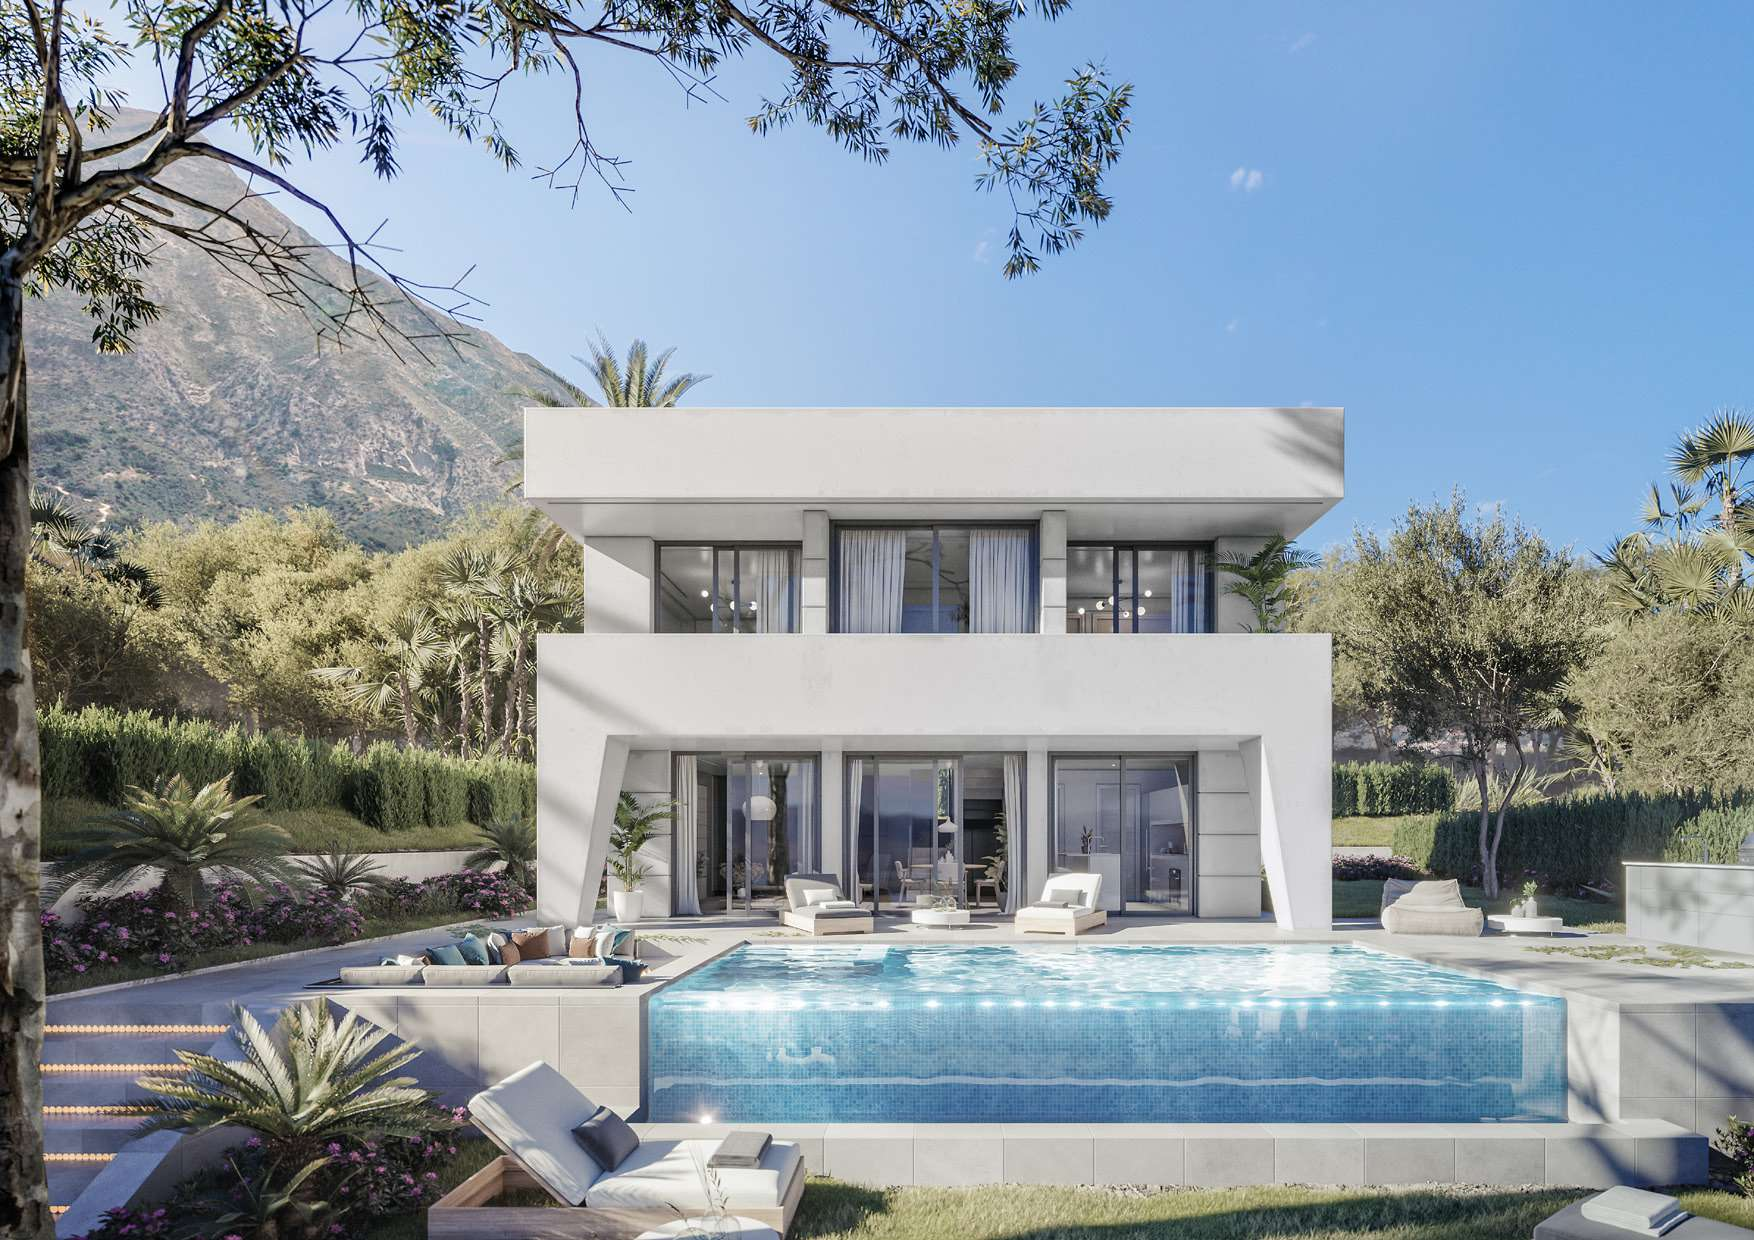 14 off-plan Villas in La Duquesa, Costa del Sol